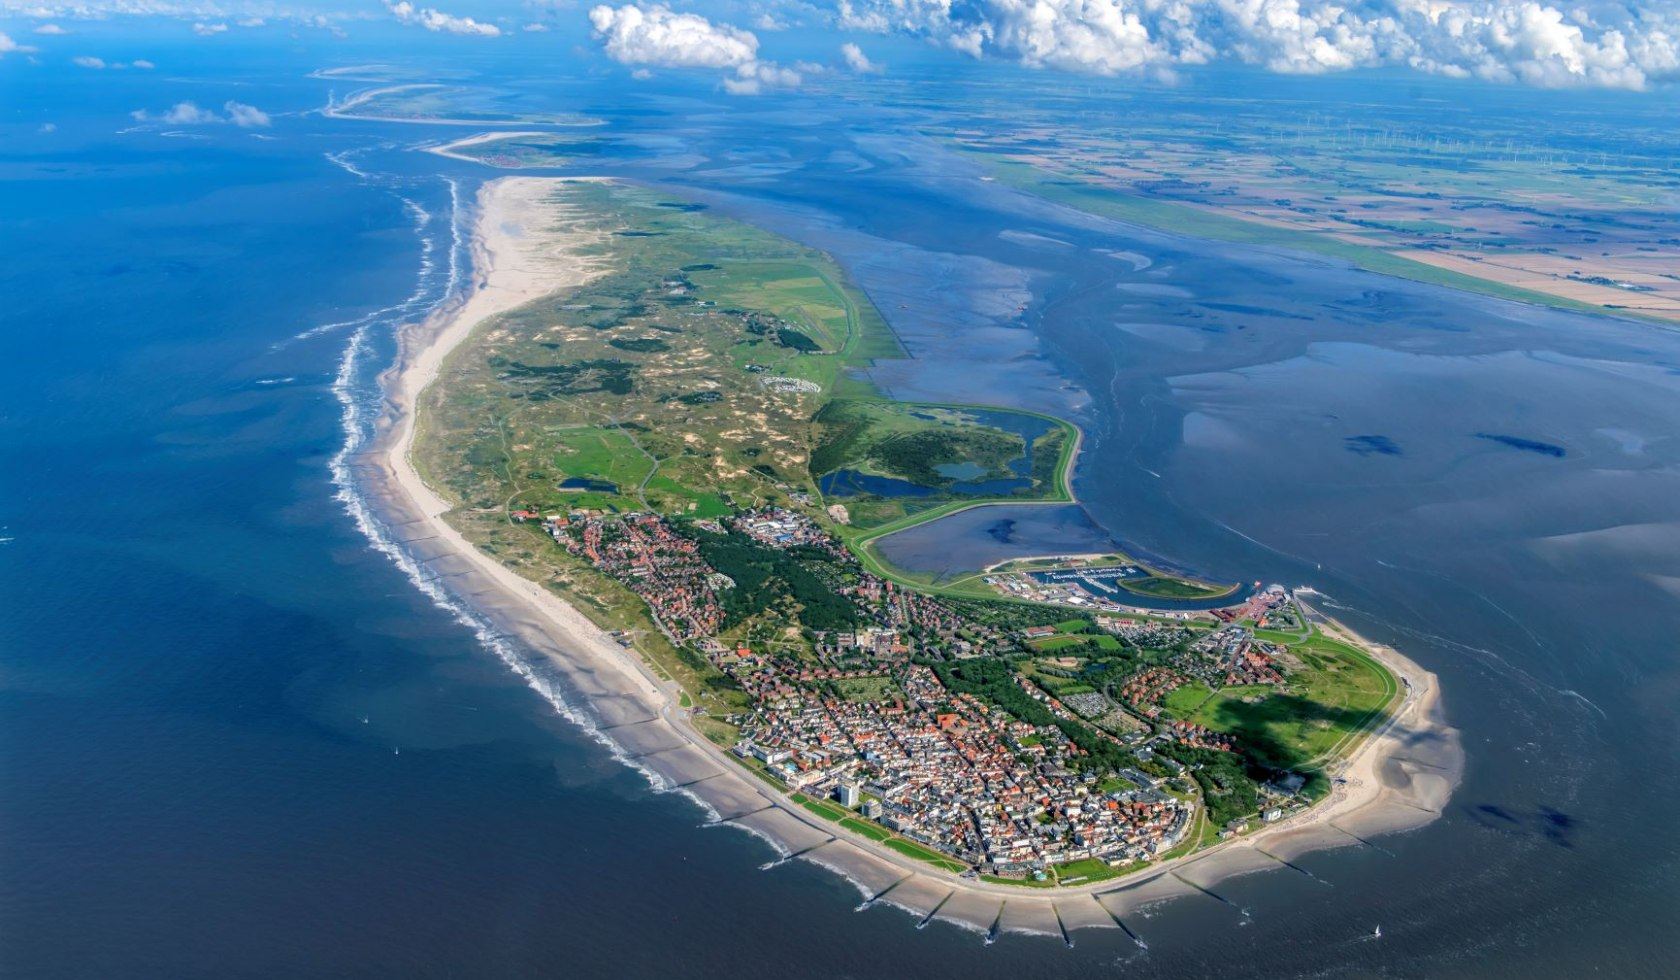 Norderney Luchtfoto